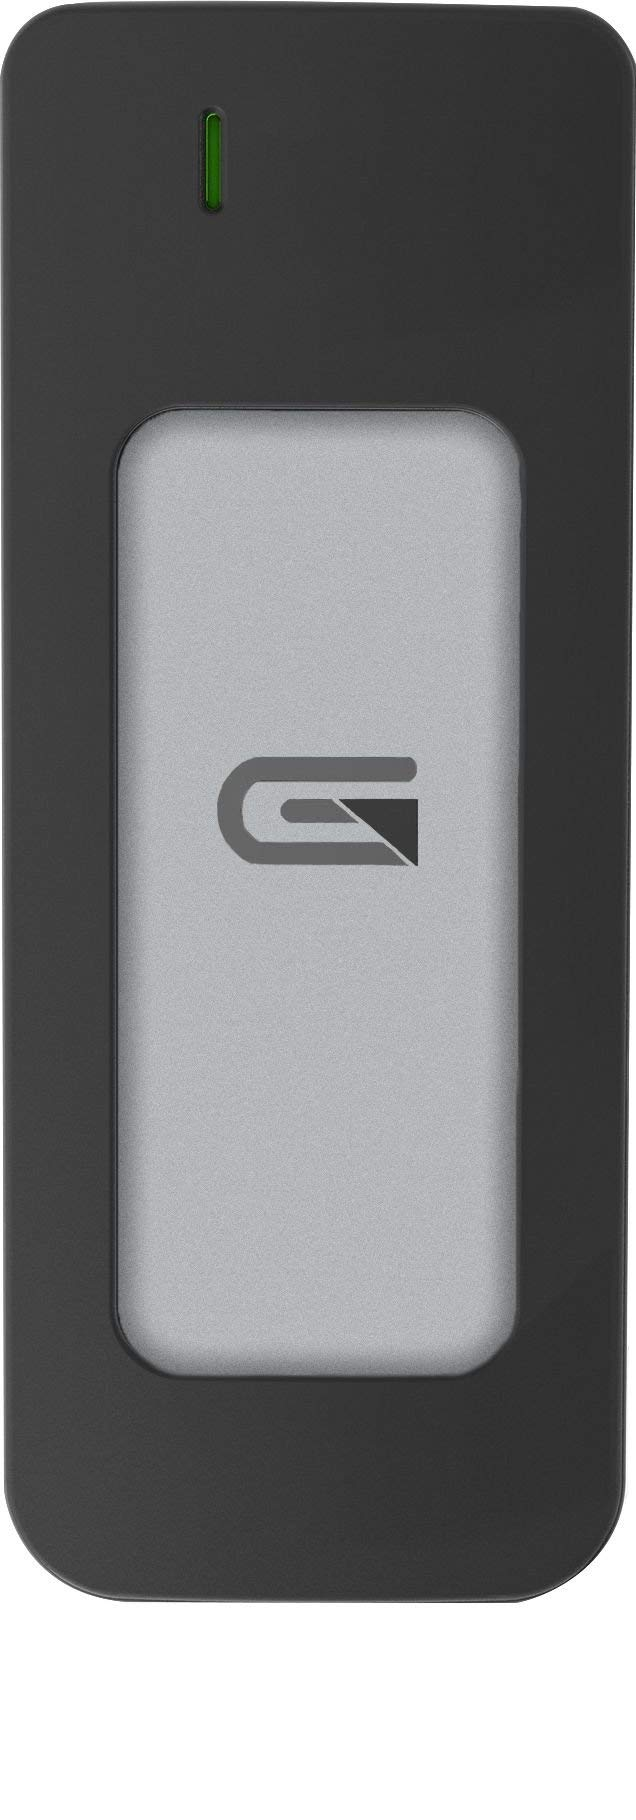 Glyph 1 TB Atom USB 3.1 Type-C External Solid State Drive - Silver by Glyph Production Technologies